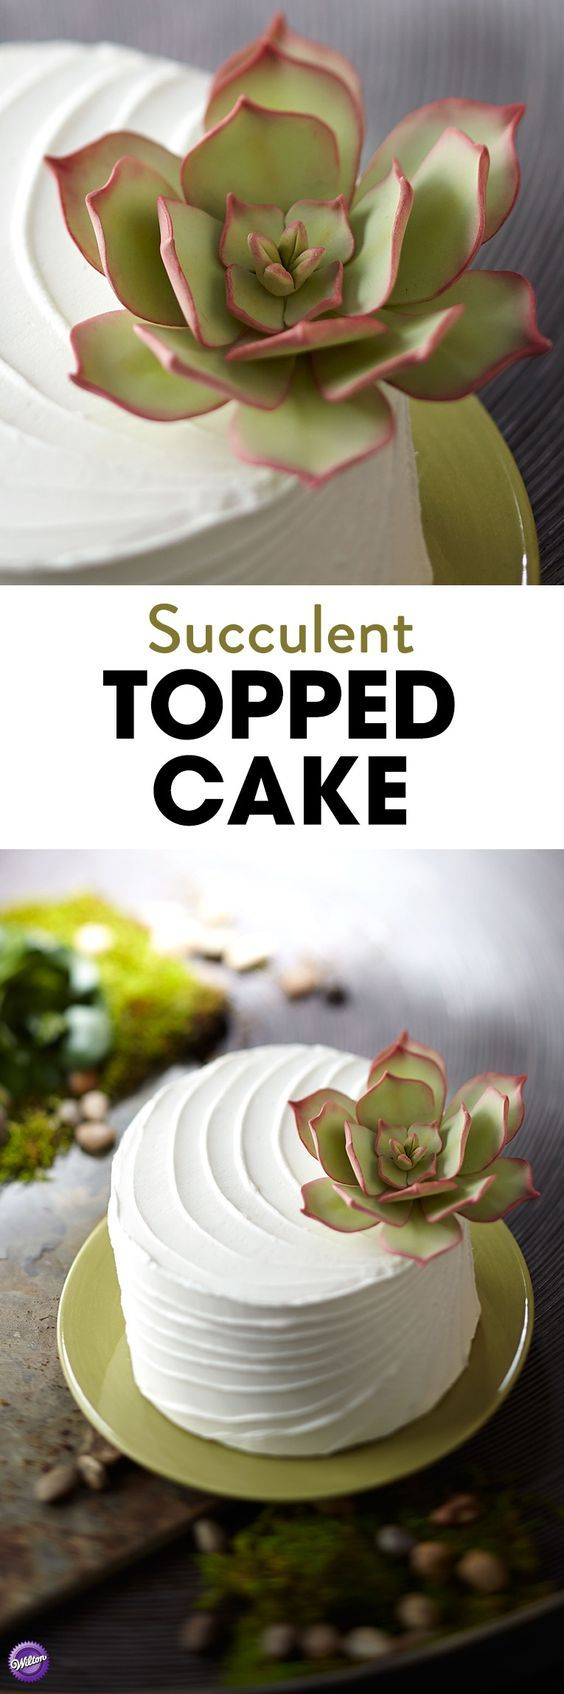 Learn how to decorate a cake with a pretty and lifelike fondant succulent plant that will add a fresh, natural touch on a buttercream-iced cake. Use the Wilton Gum Paste Flower Cutter Set to create this hardy-looking plant.